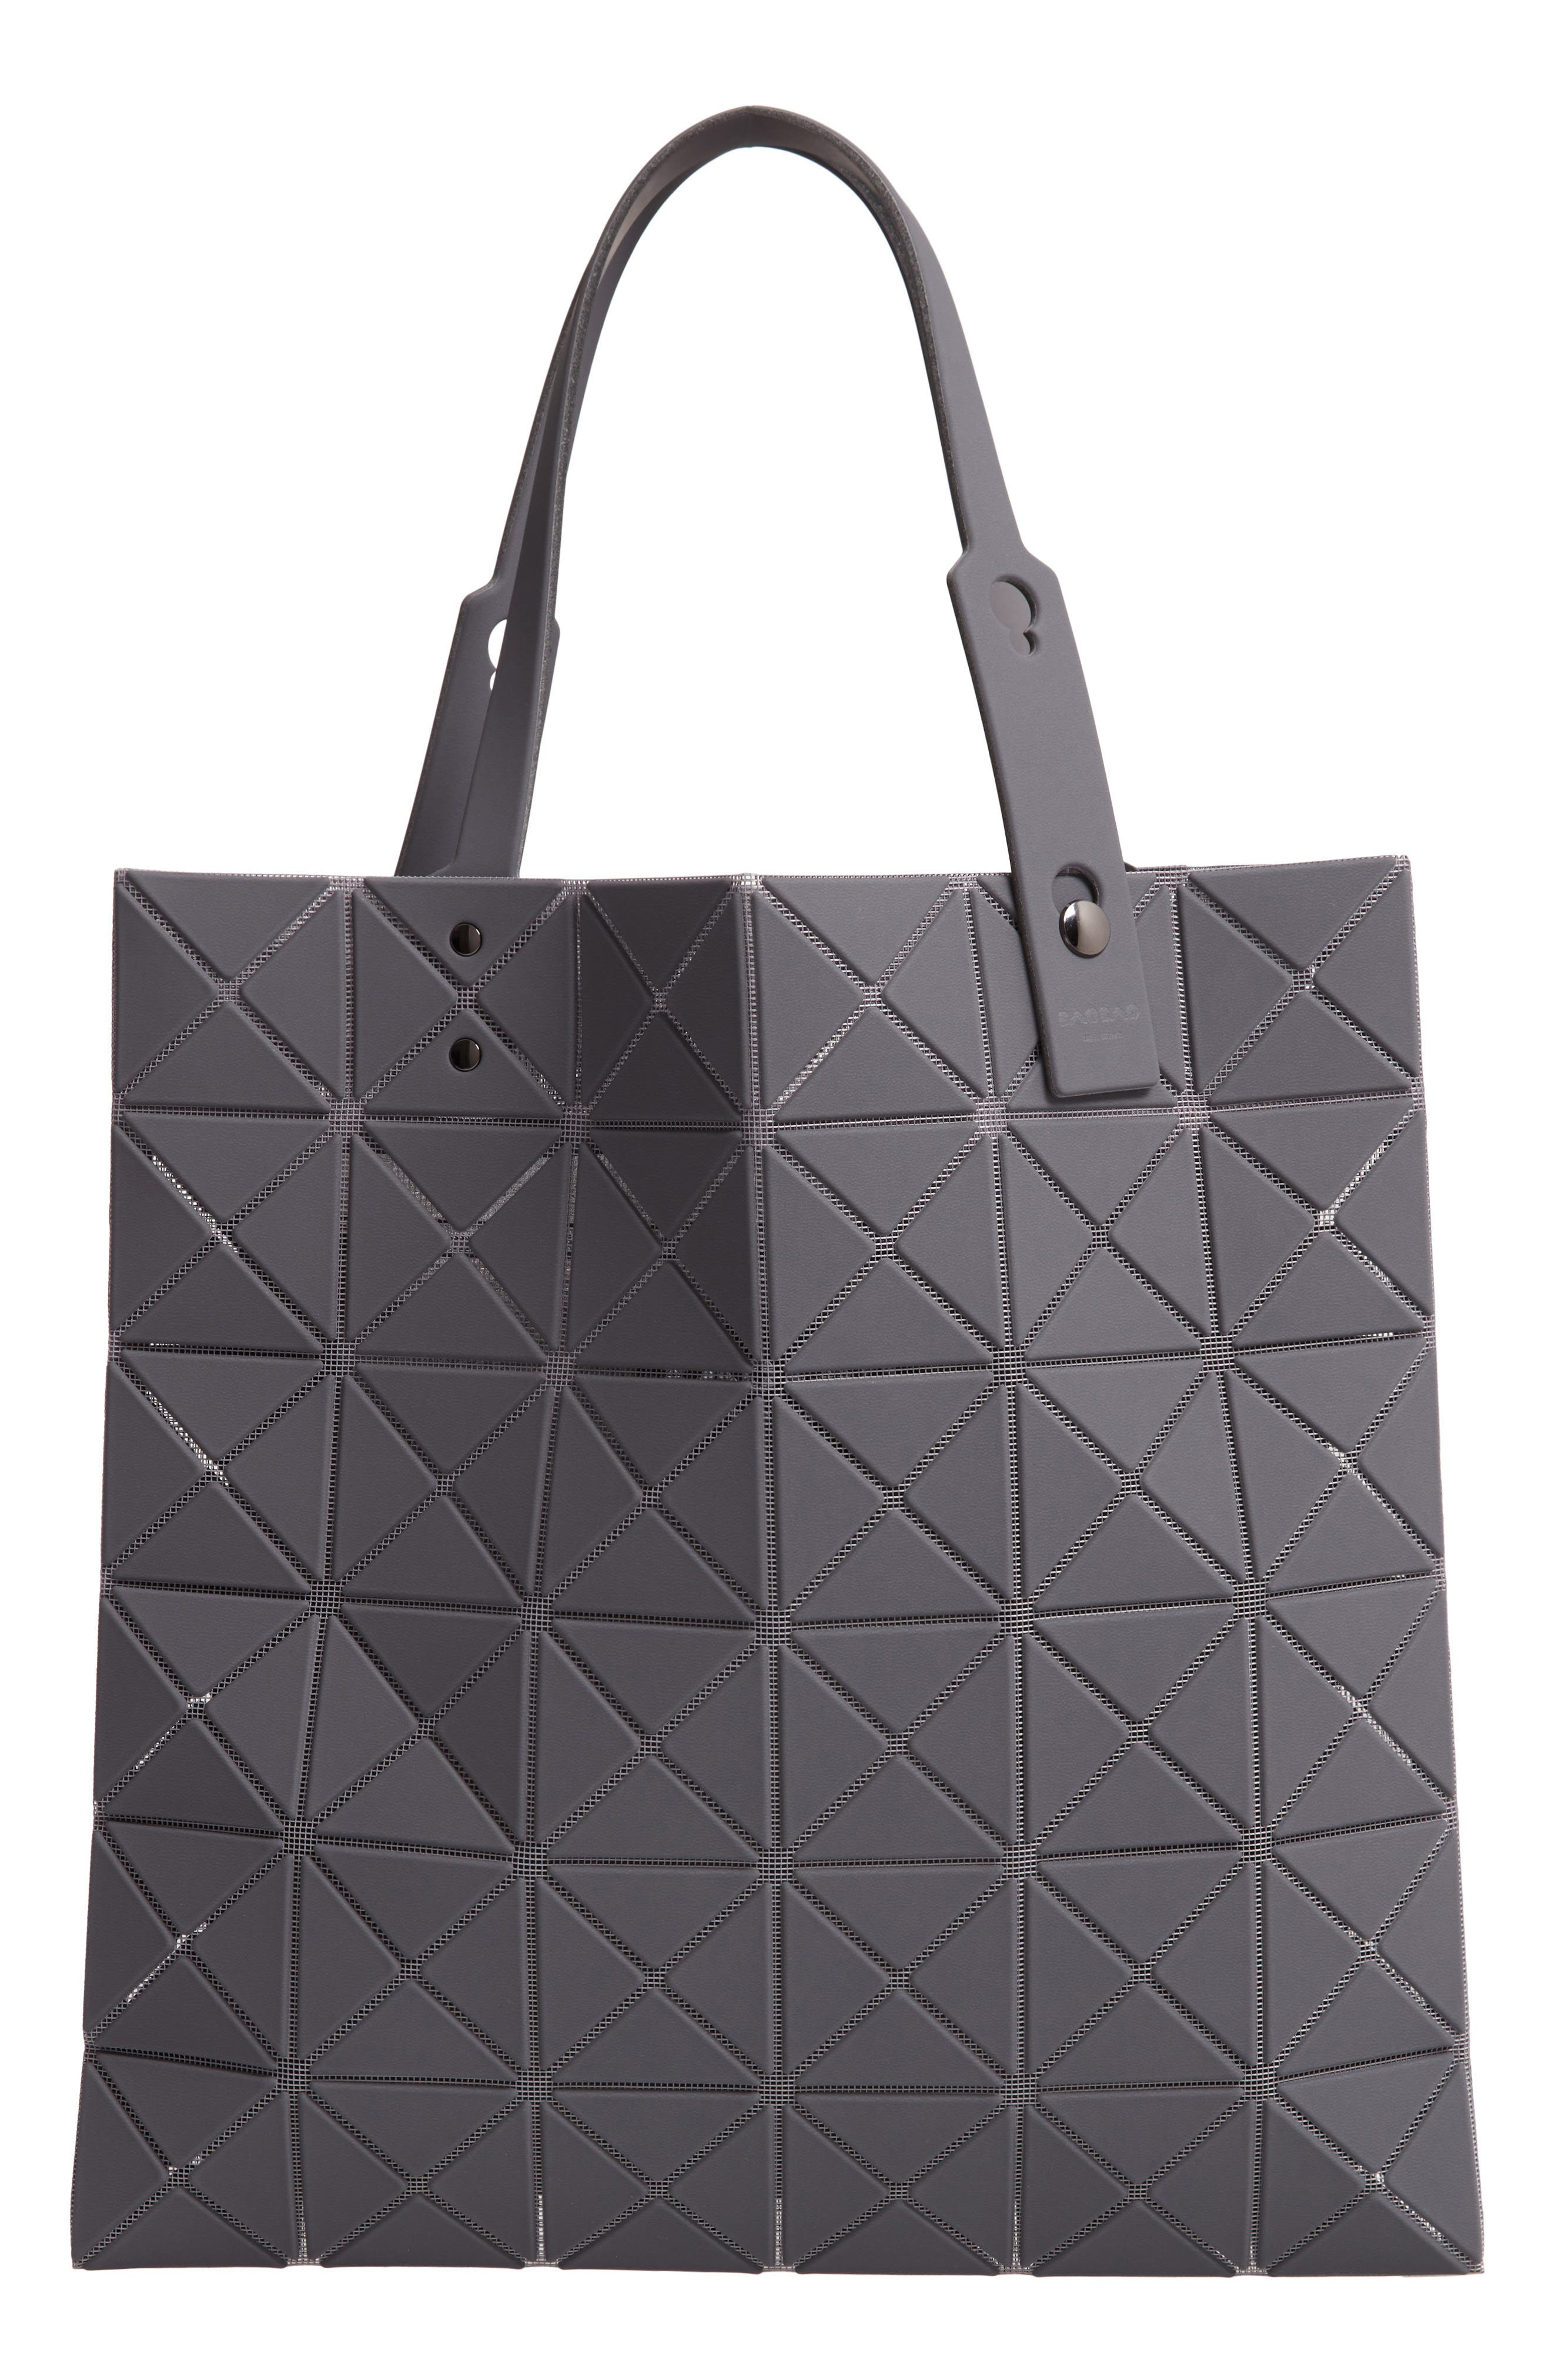 Lucent Prism Tote Bag - Grey in Gray